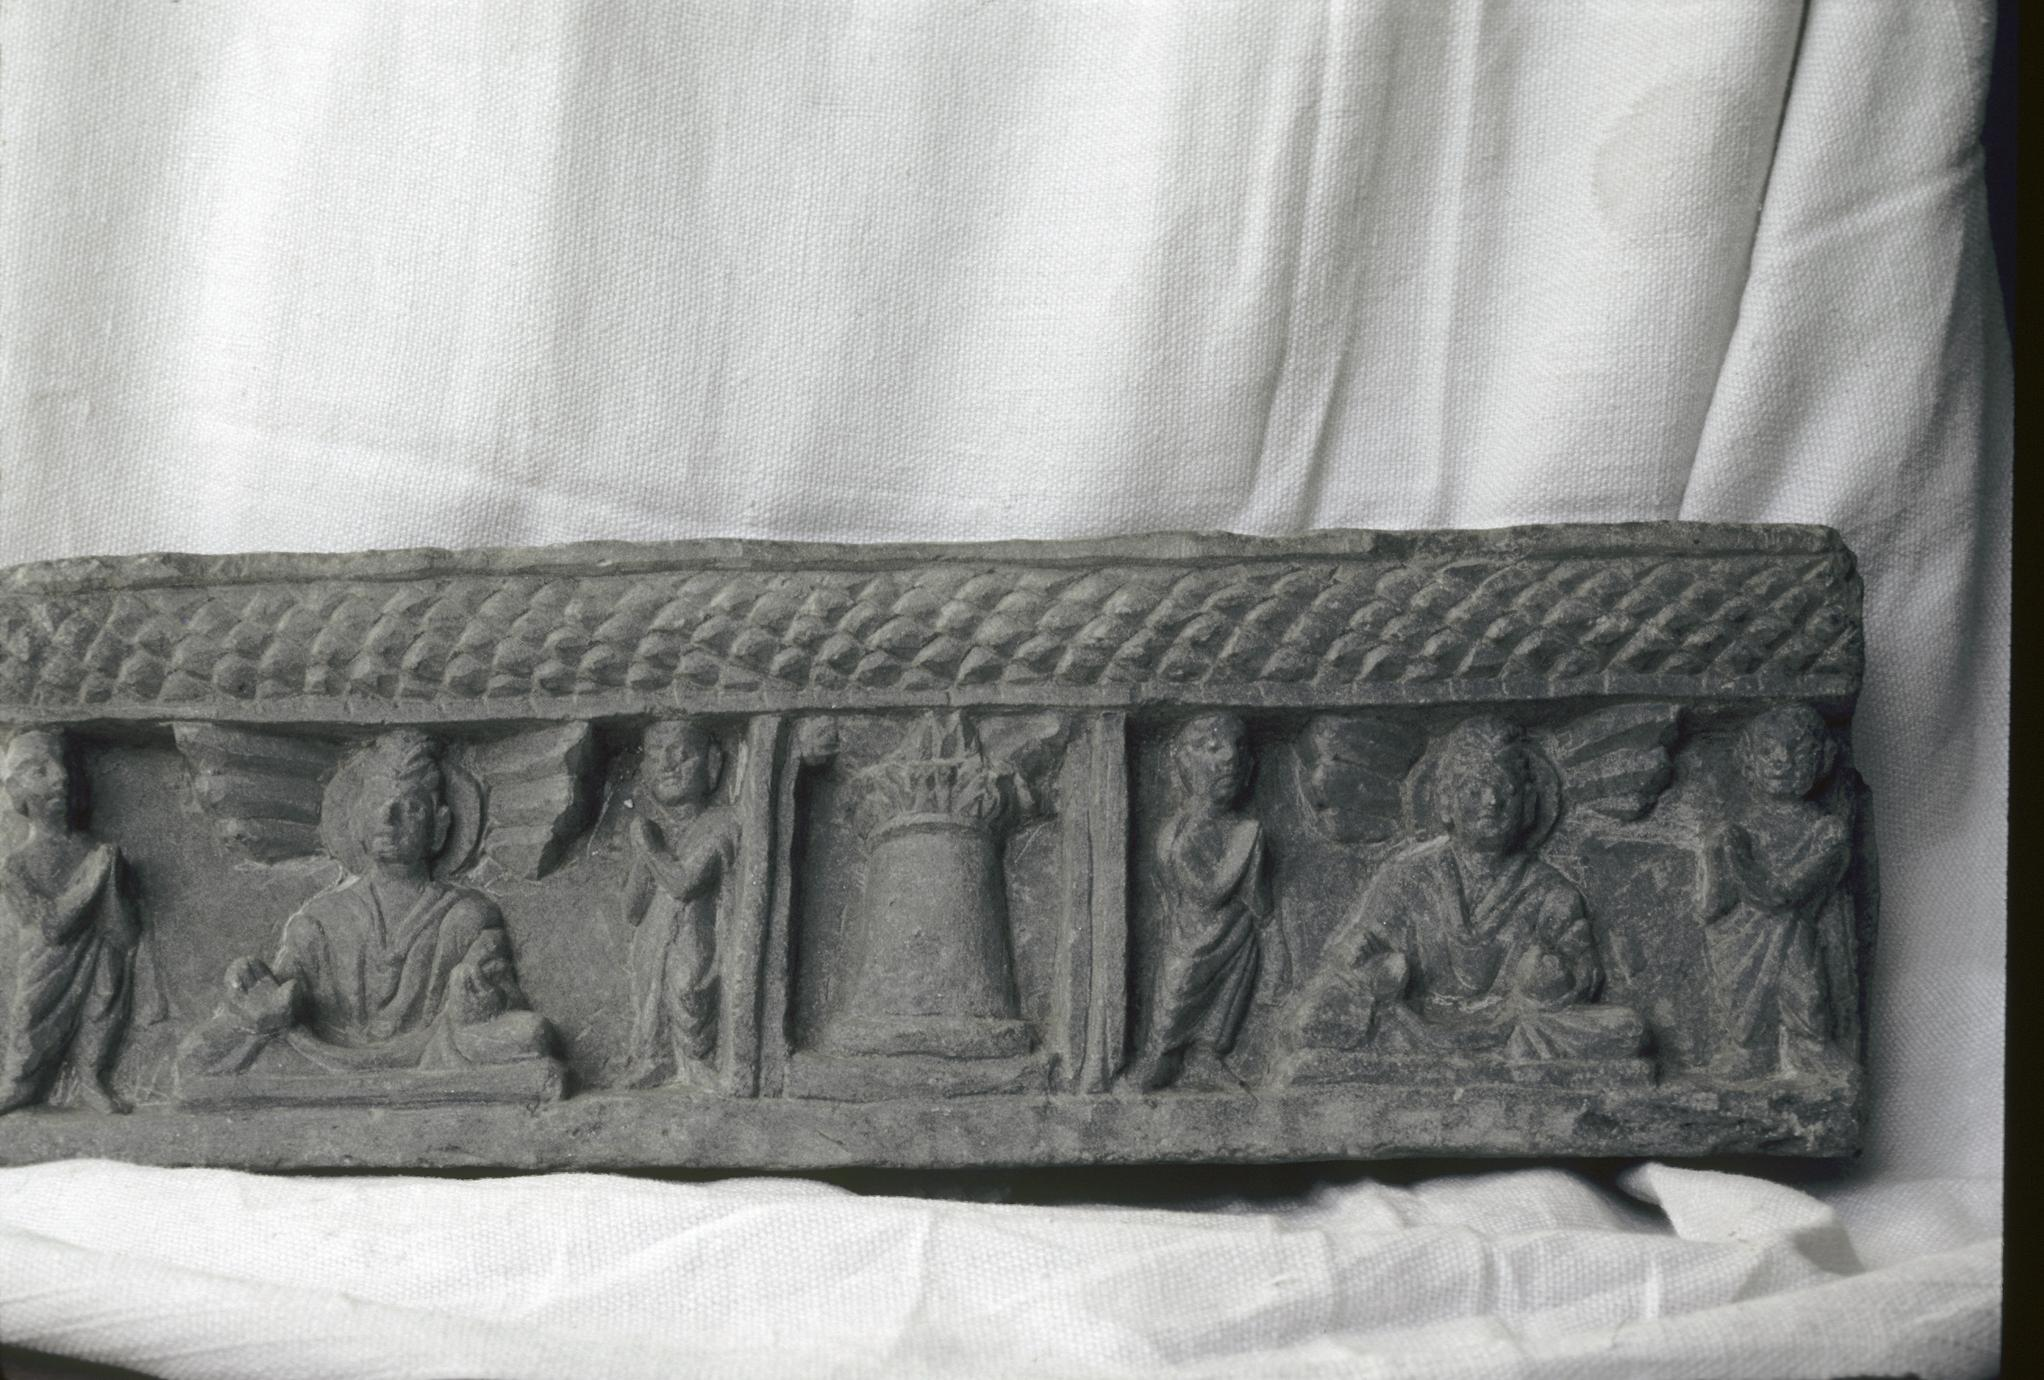 NG311, Figured Relief (1 of 3)